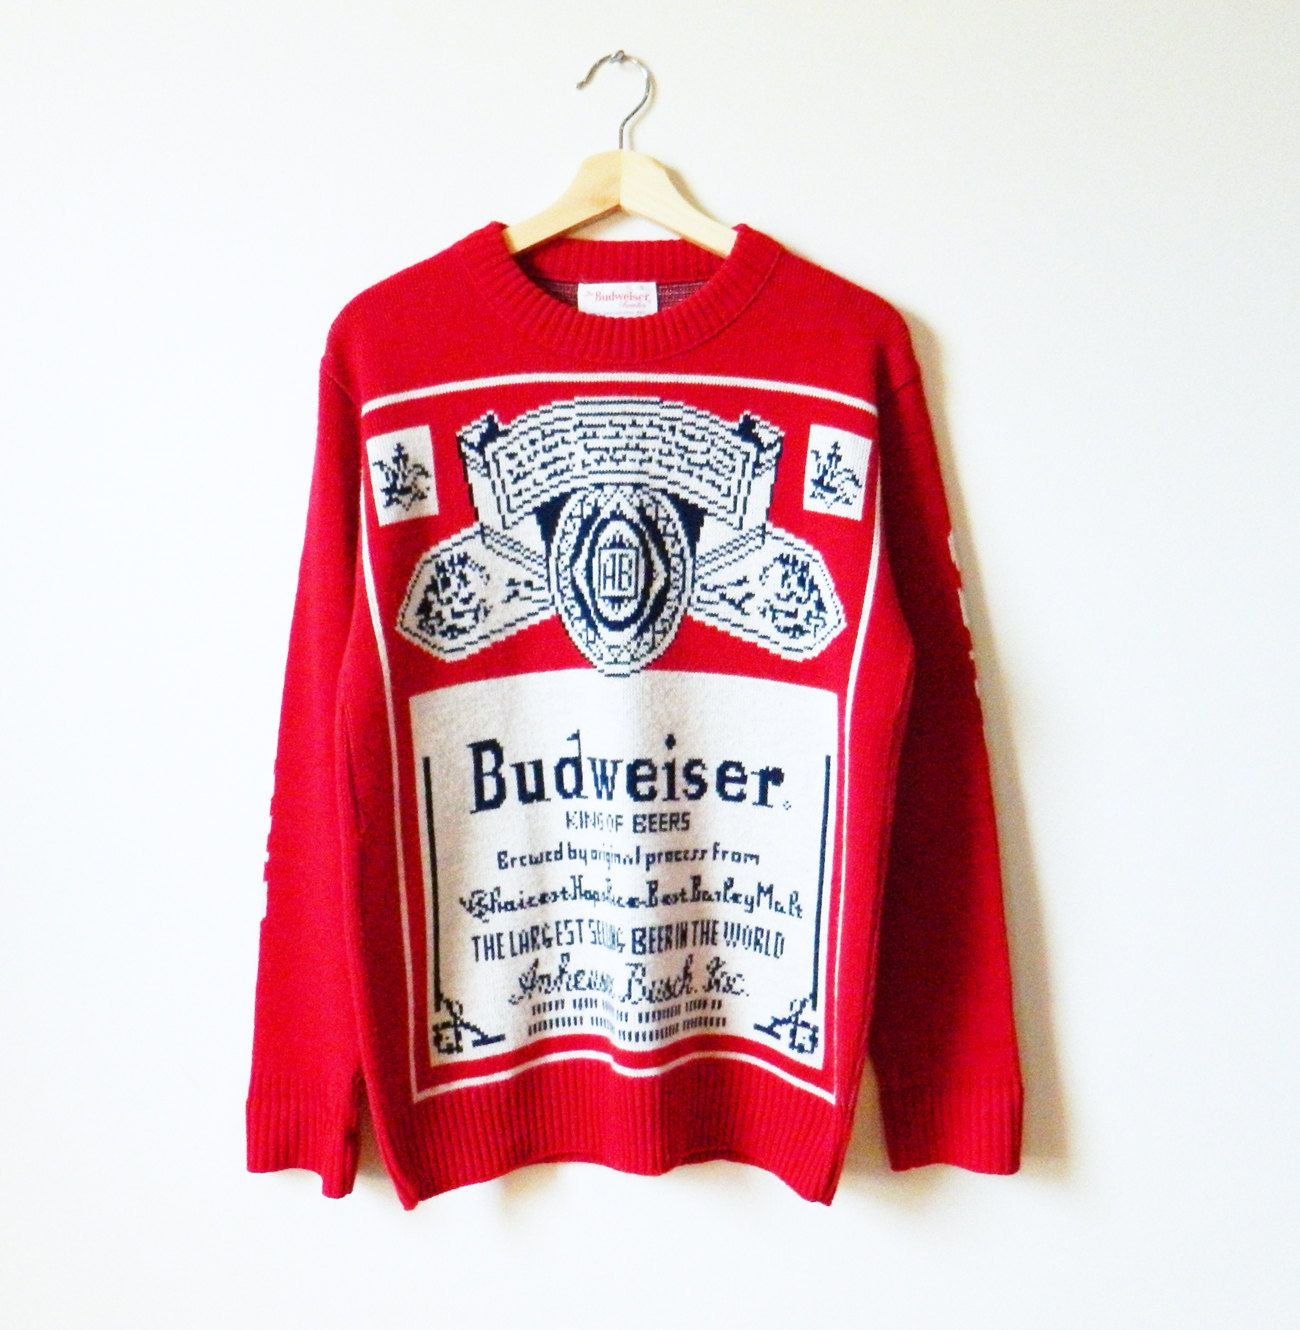 Rare Vintage Budweiser Sweater / 1980s Knit Pullover Sweater ...